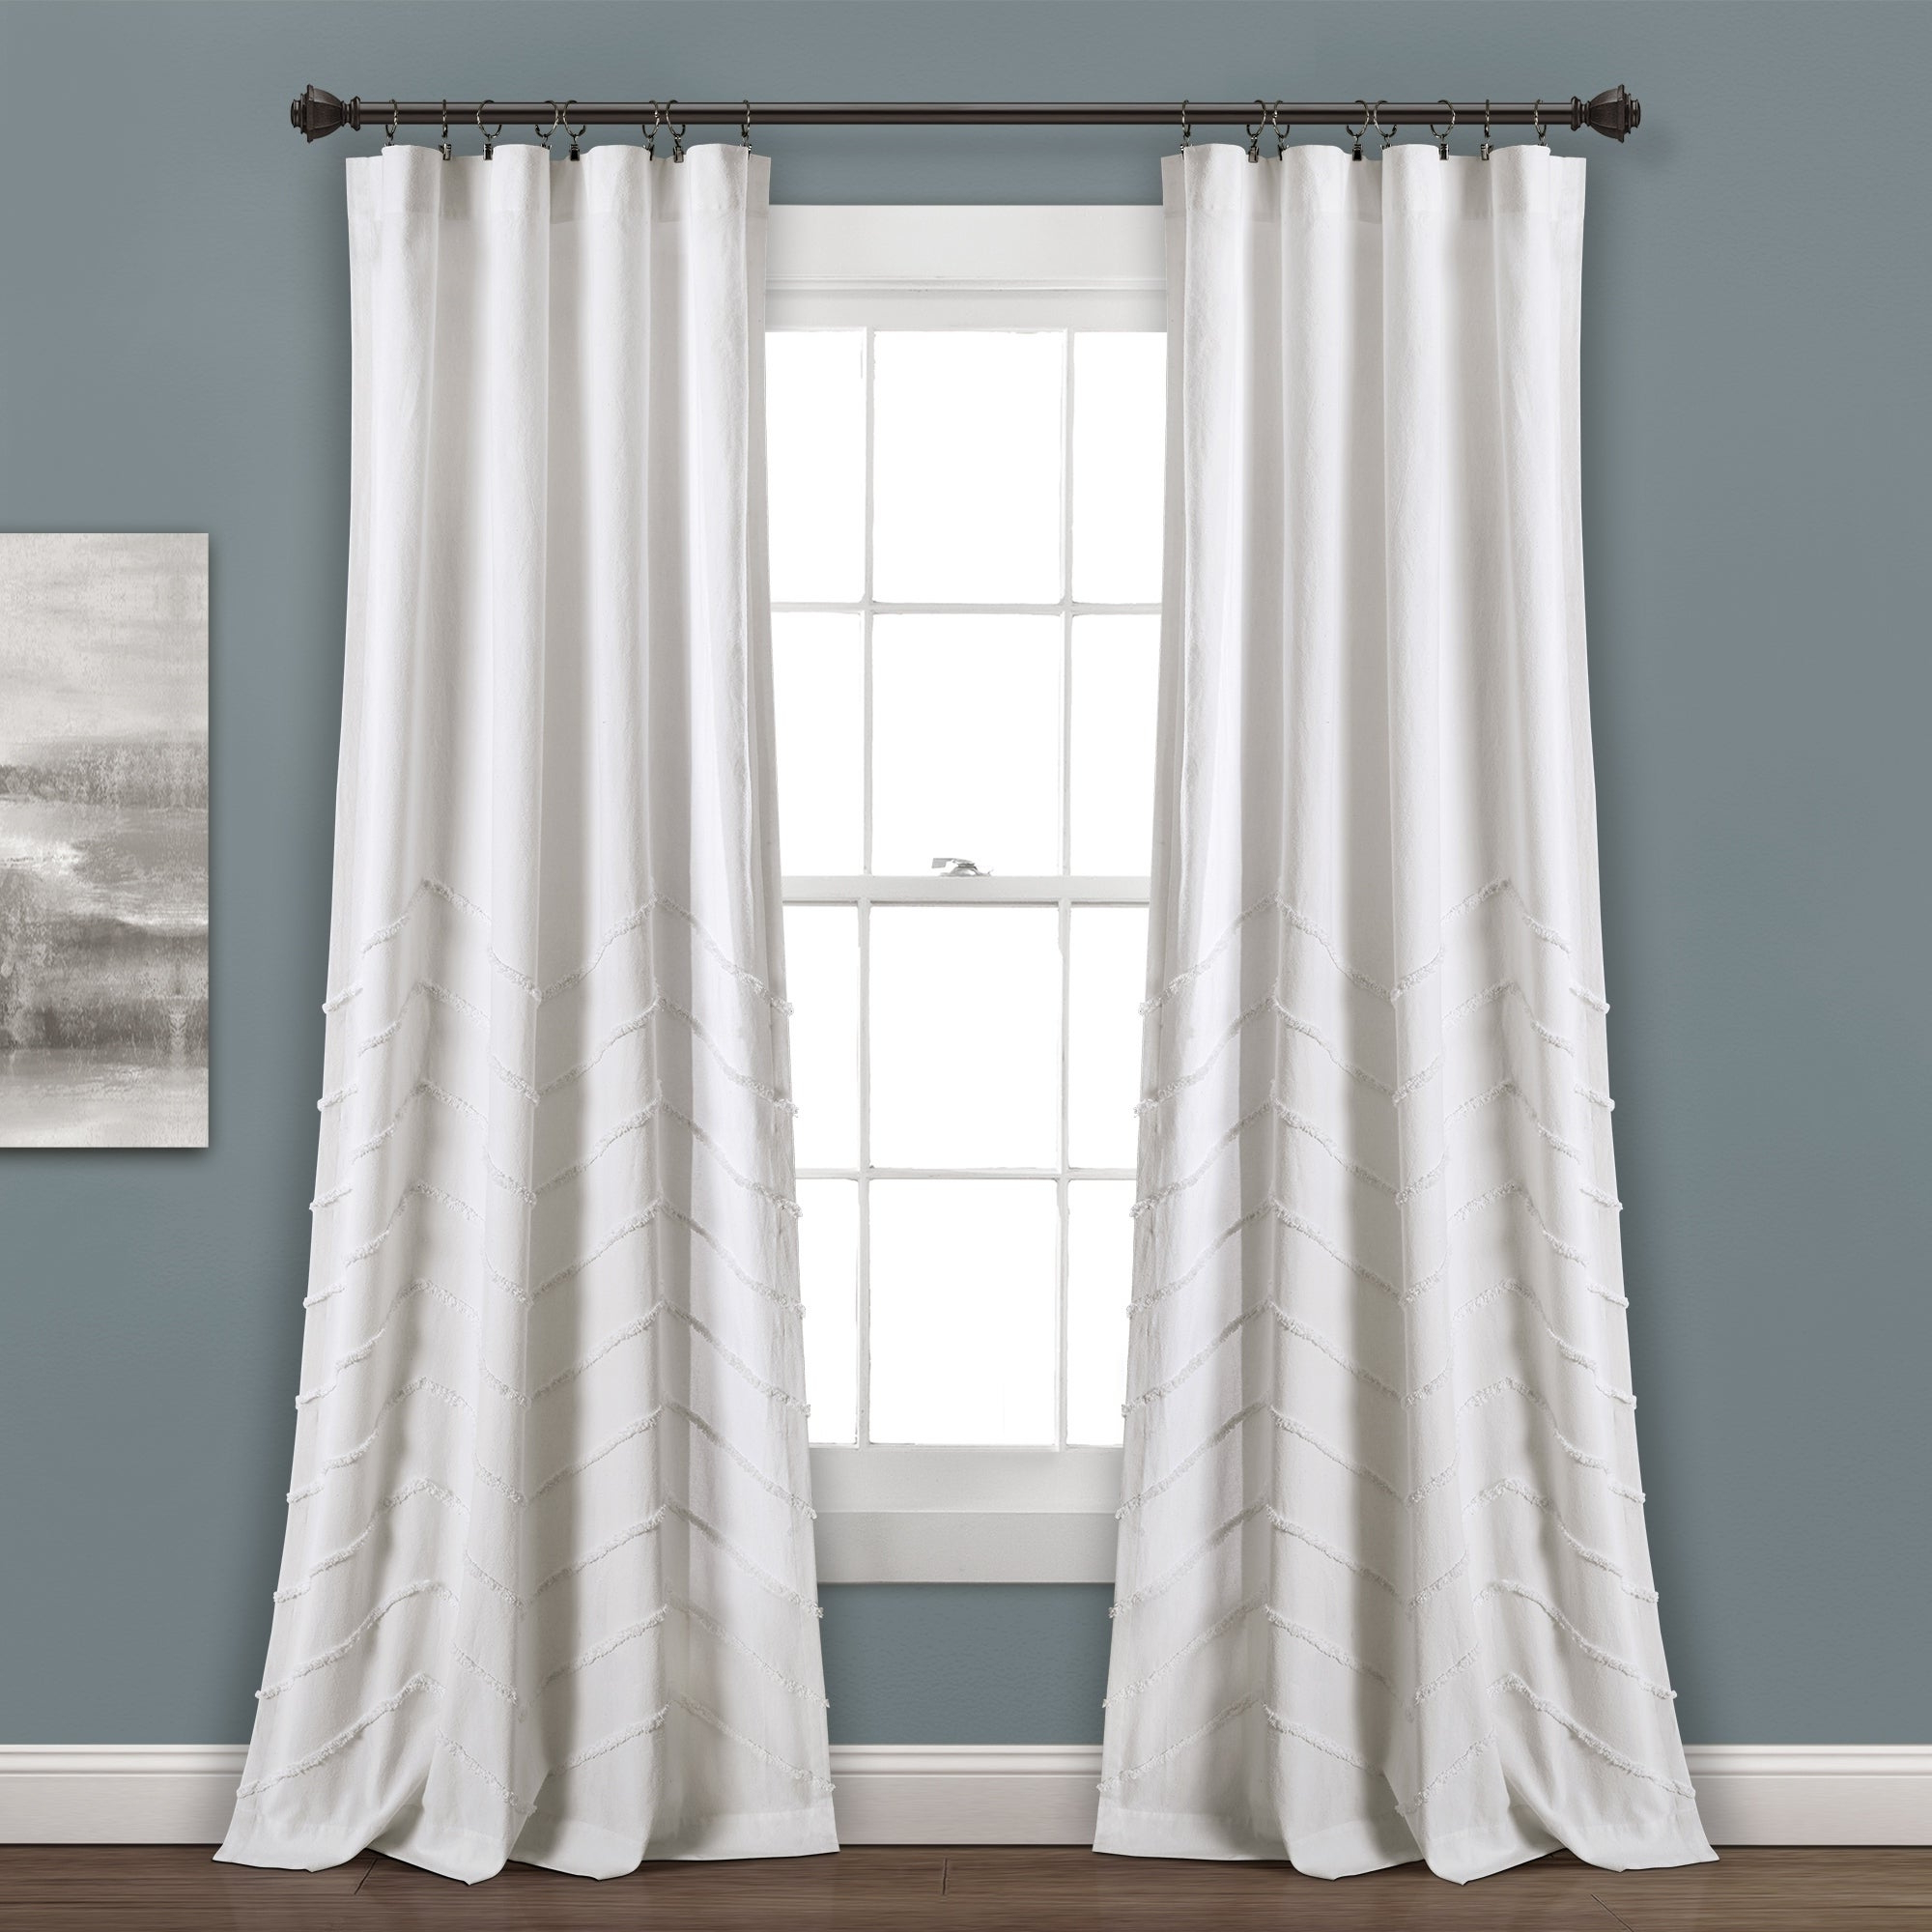 Lush Decor Chenille Chevron Window Curtain Panel Pair With Regard To Well Known The Gray Barn Kind Koala Curtain Panel Pairs (View 8 of 20)